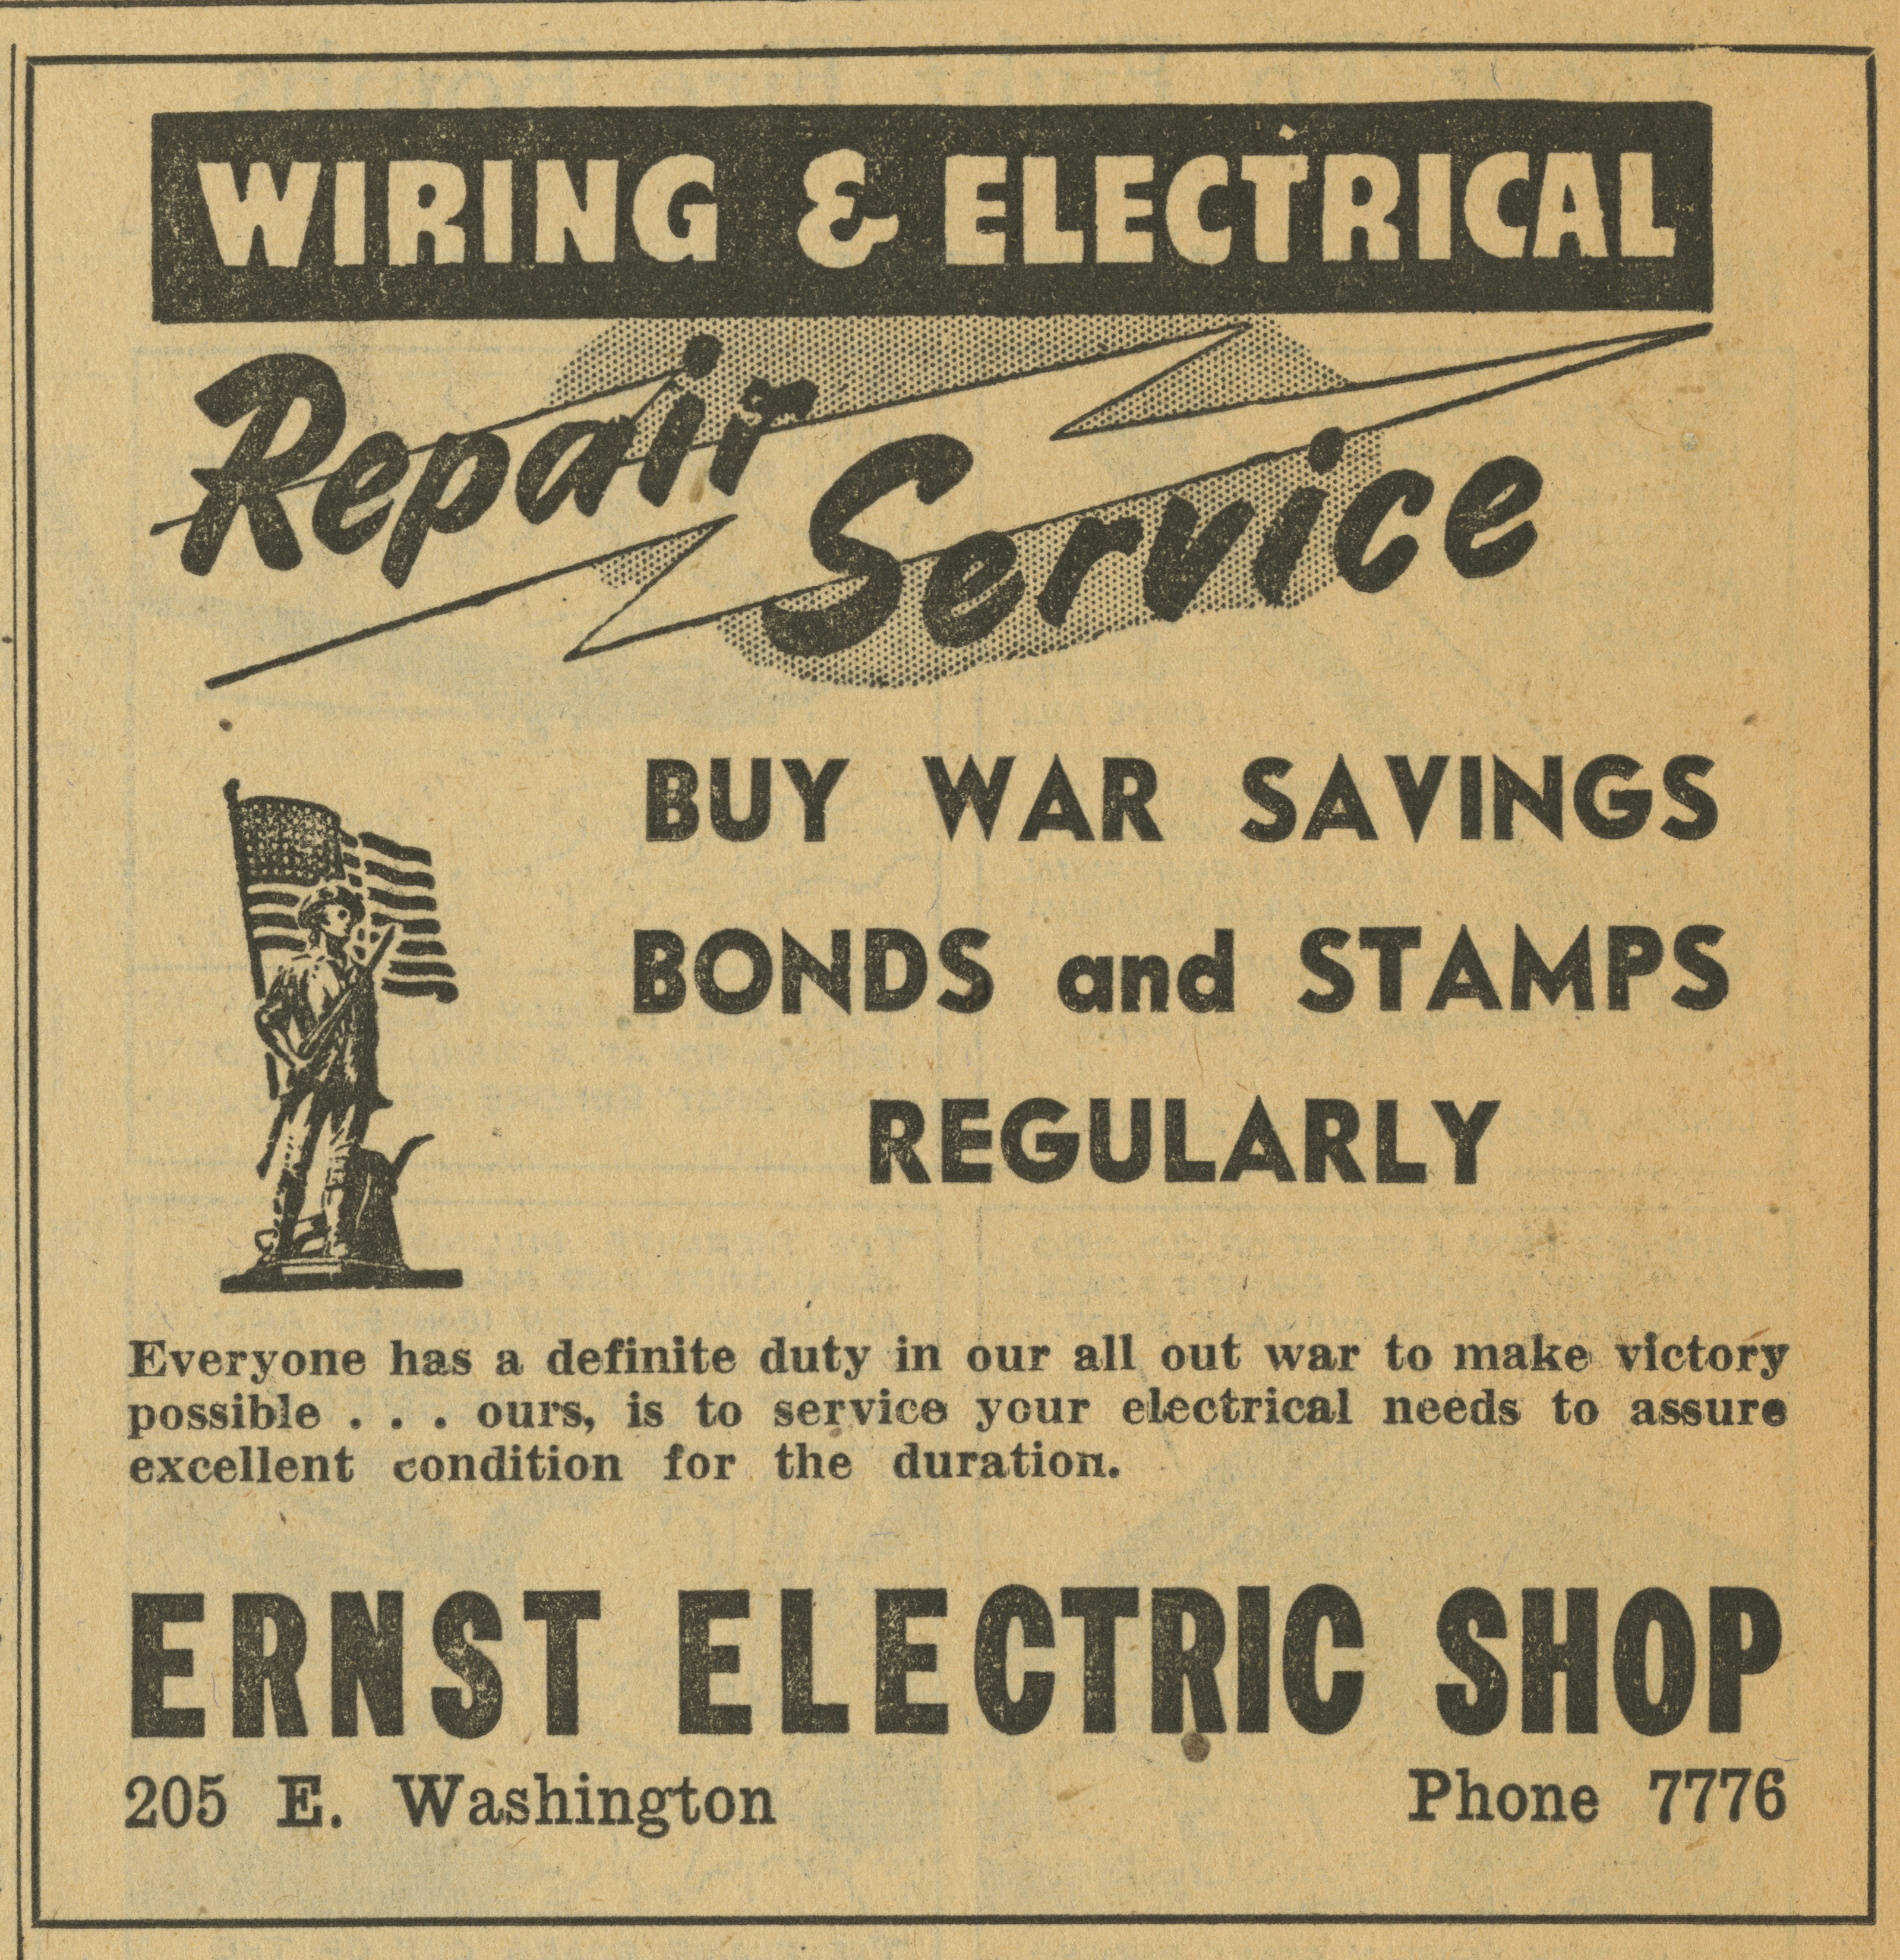 Ernst Electric Shop [advertisement] image